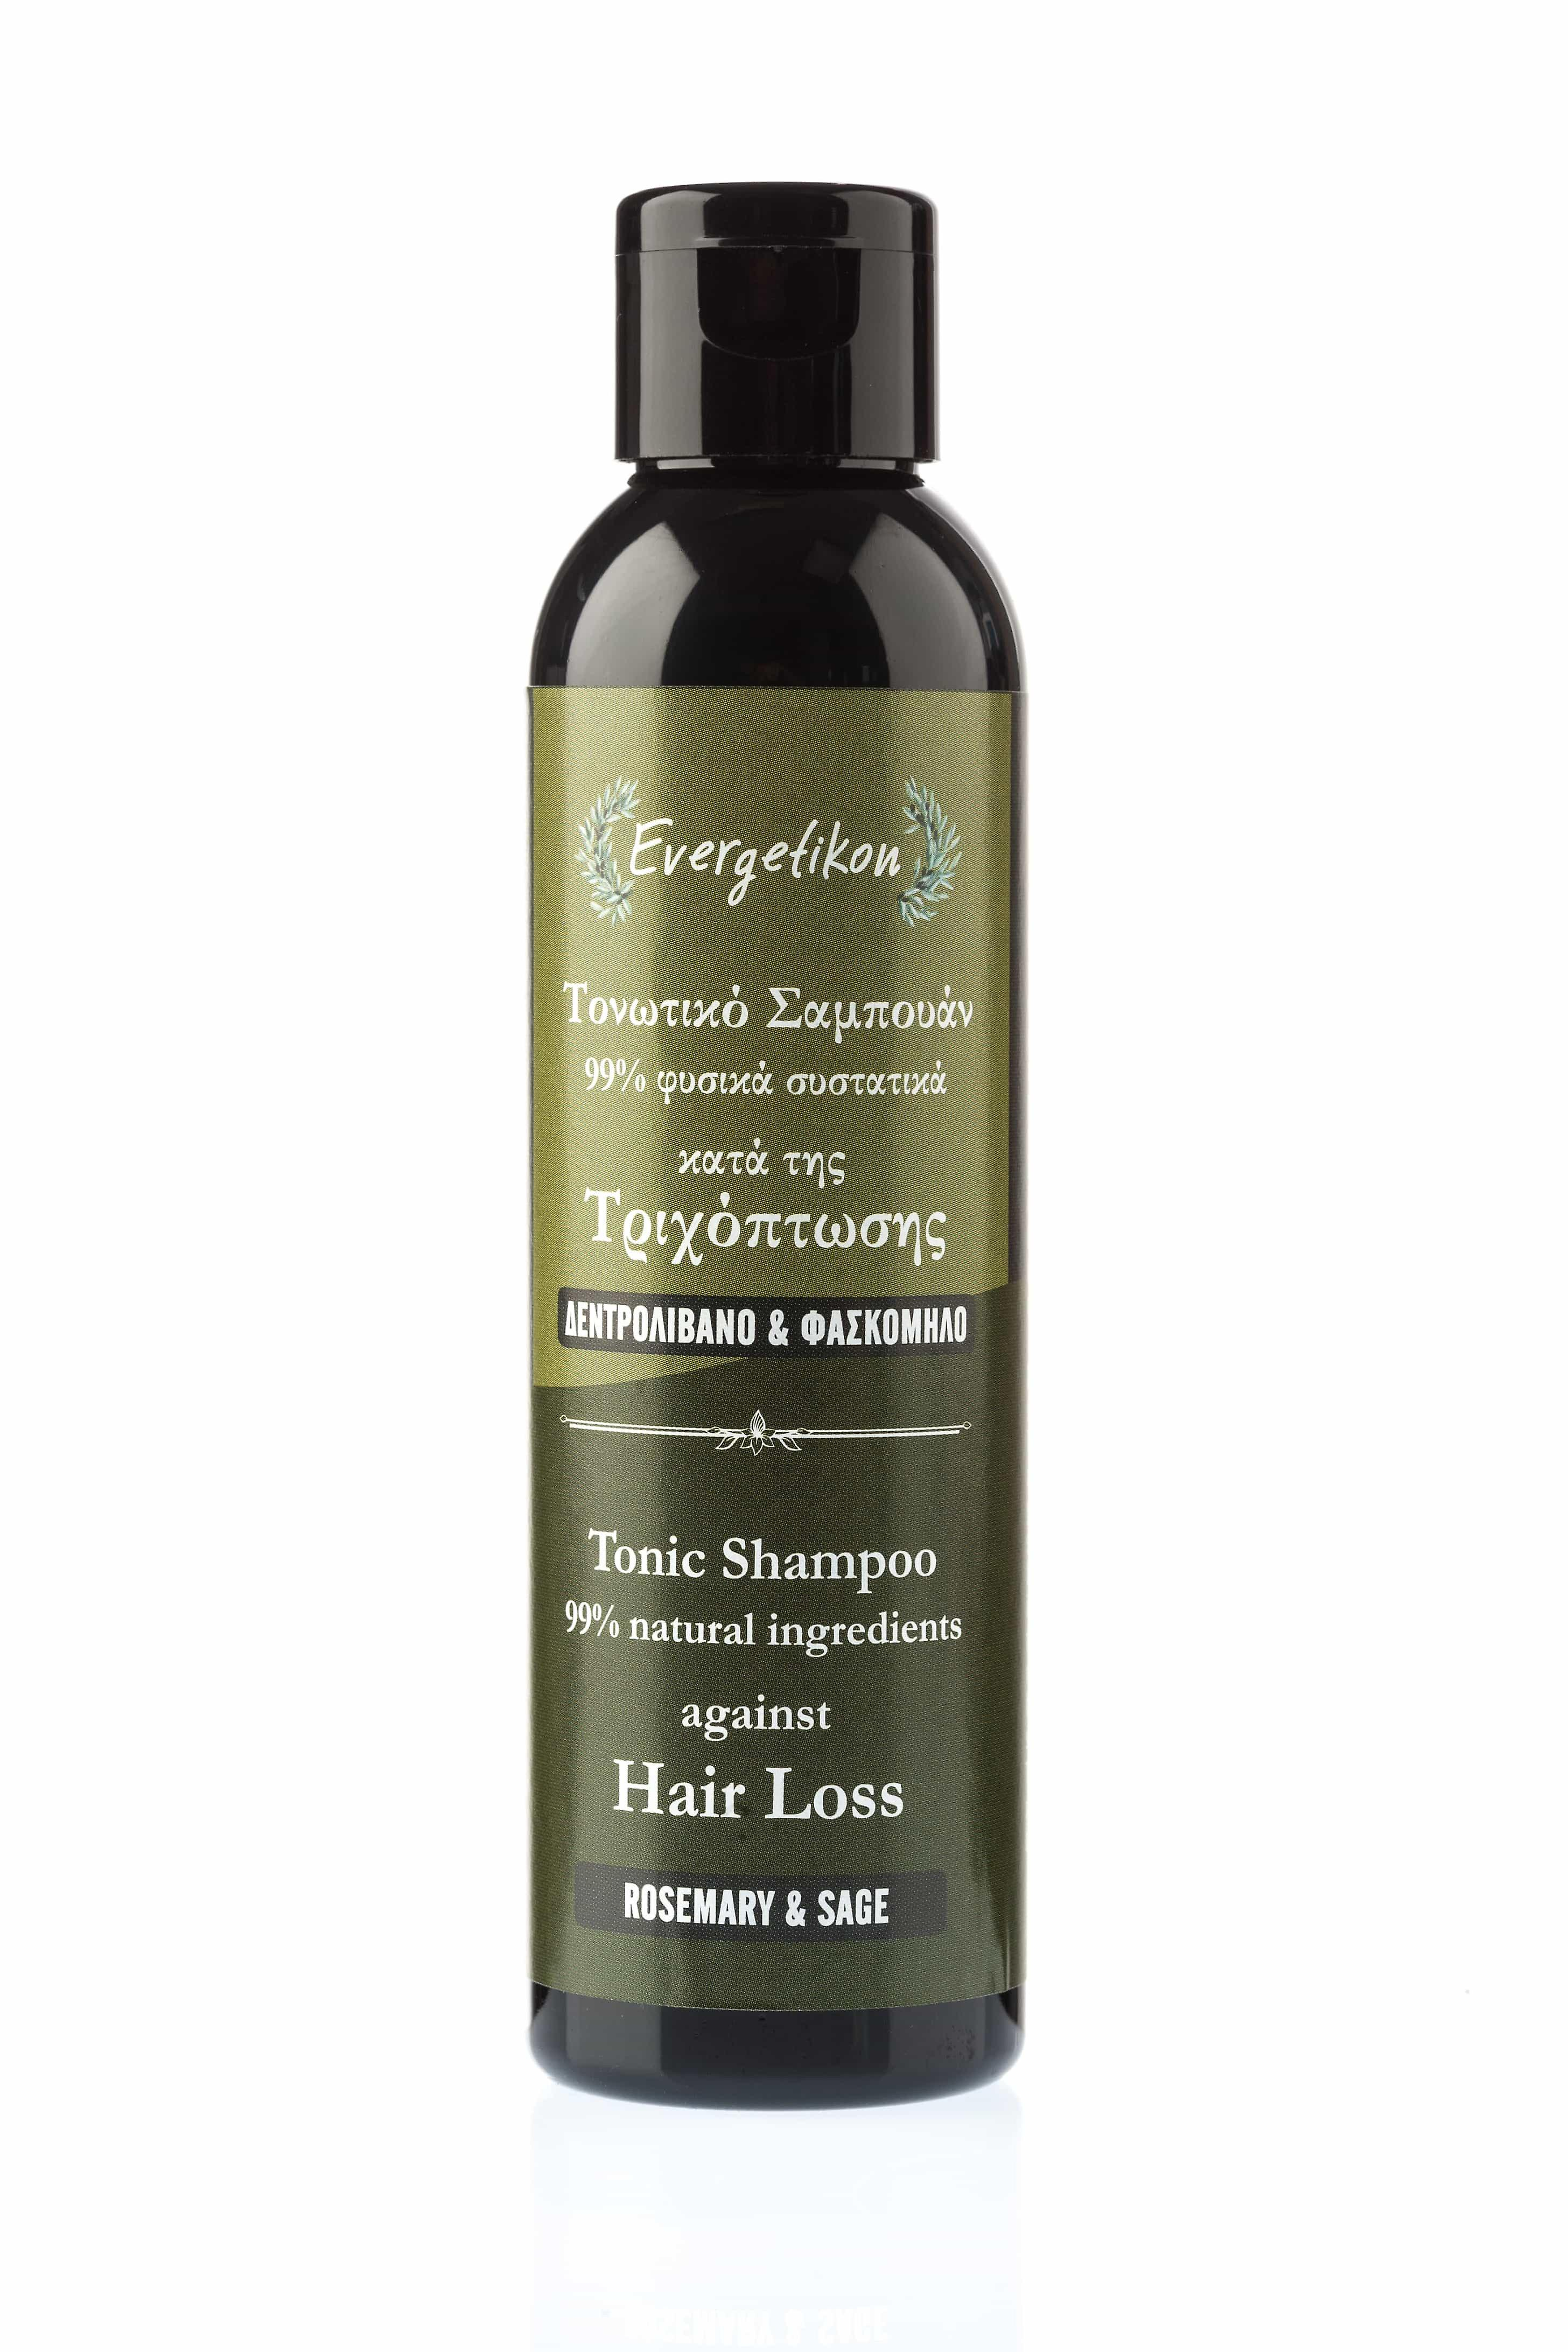 Tonic Shampoo against hair loss with rosemary and sage.